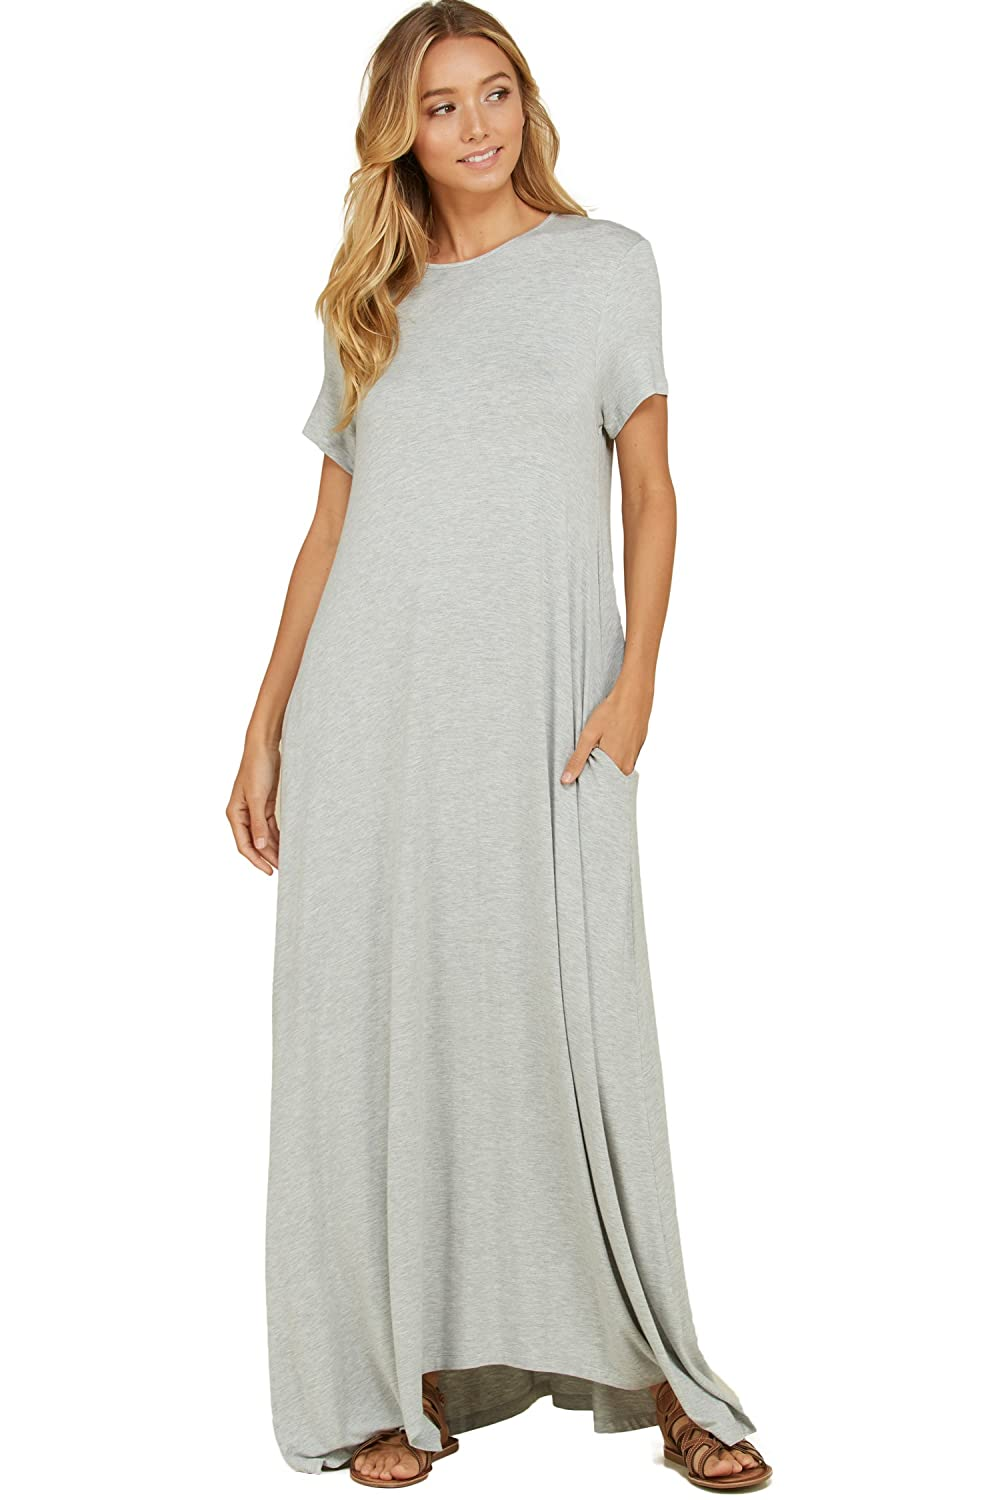 4965a221950344 Annabelle Women s Round Neck Short Sleeve Uneven Hem Casual Jersey Maxi  Dress with Side Pockets at Amazon Women s Clothing store